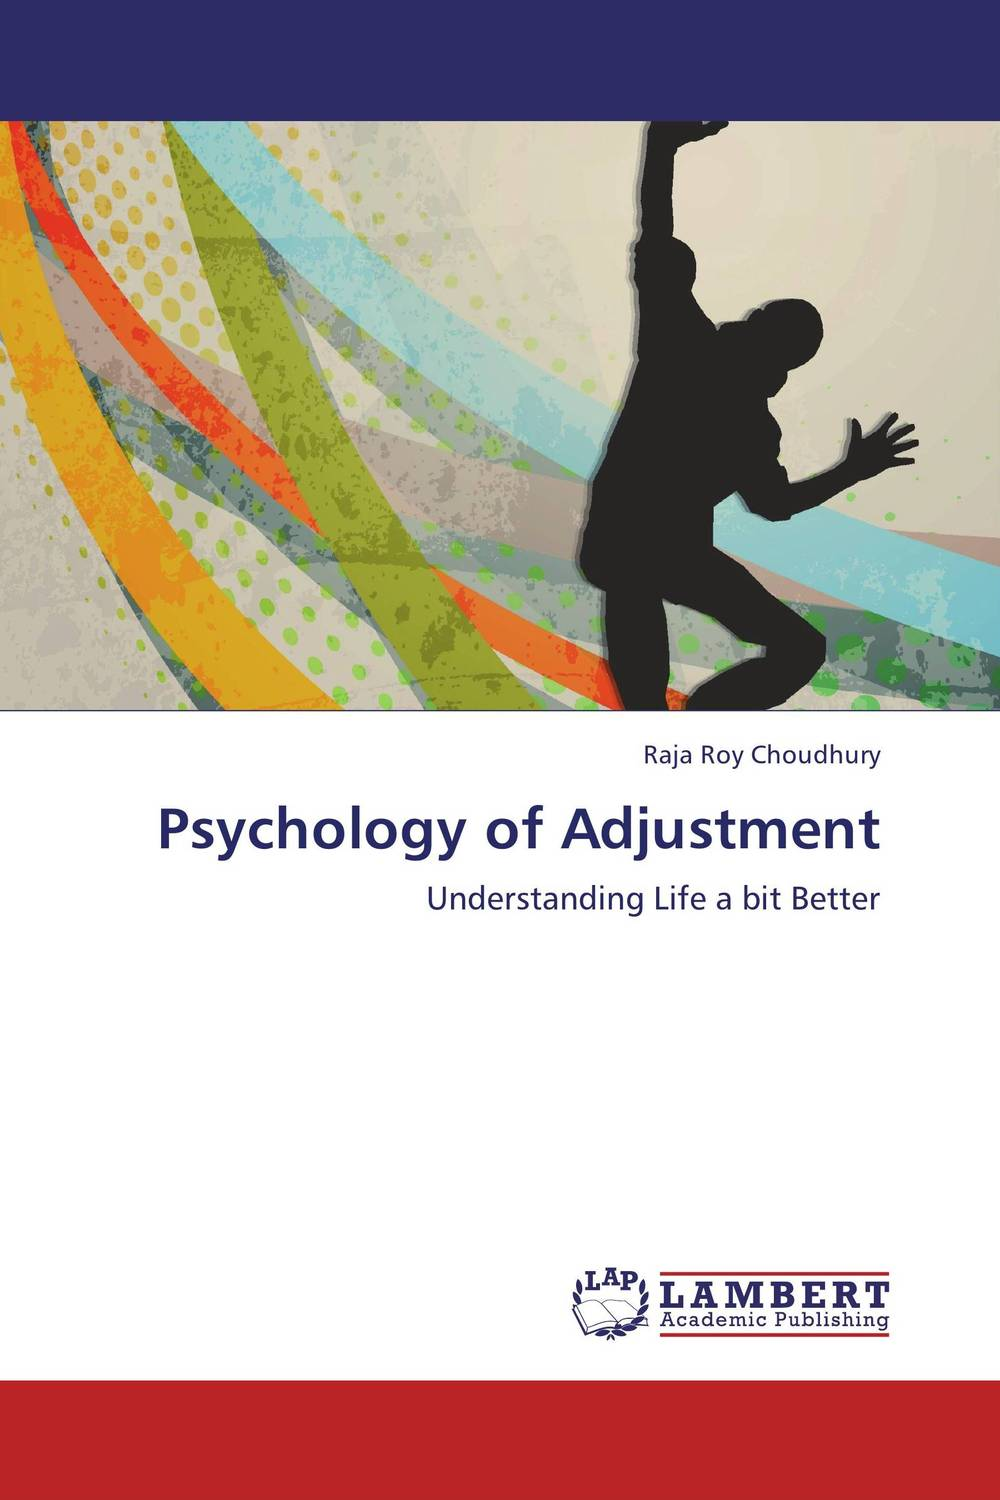 Psychology of Adjustment presidential nominee will address a gathering